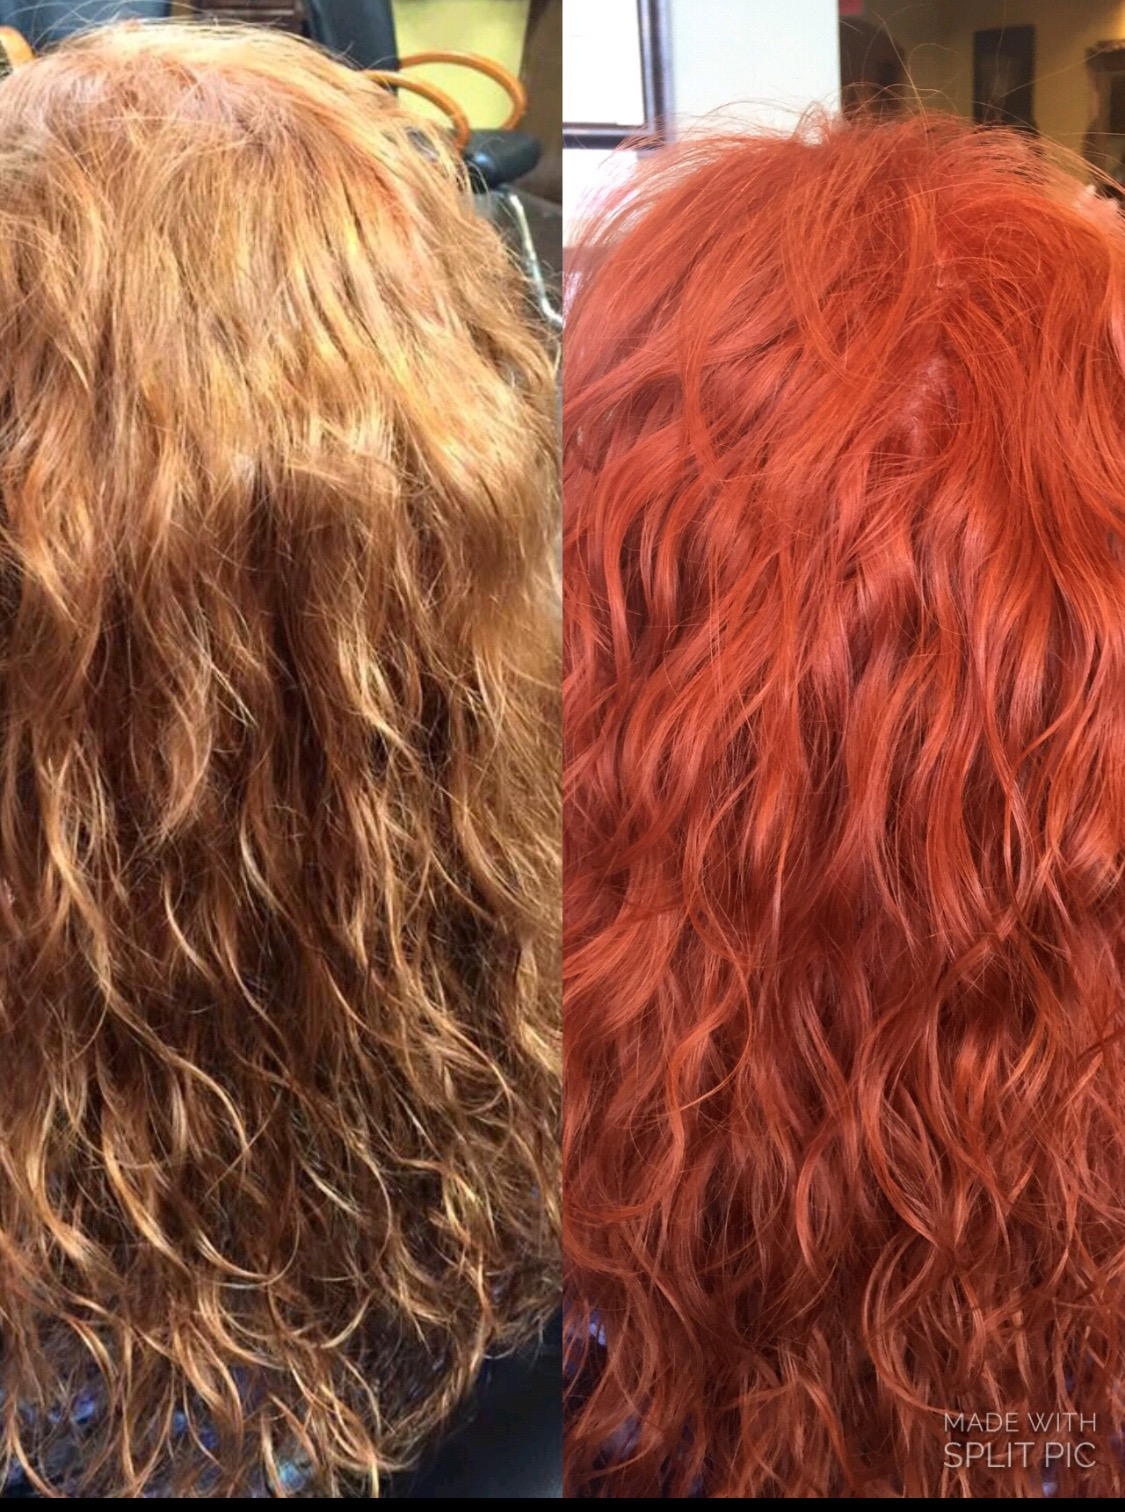 Makeover: Color Update From Faded Strawberry To Bright Copper